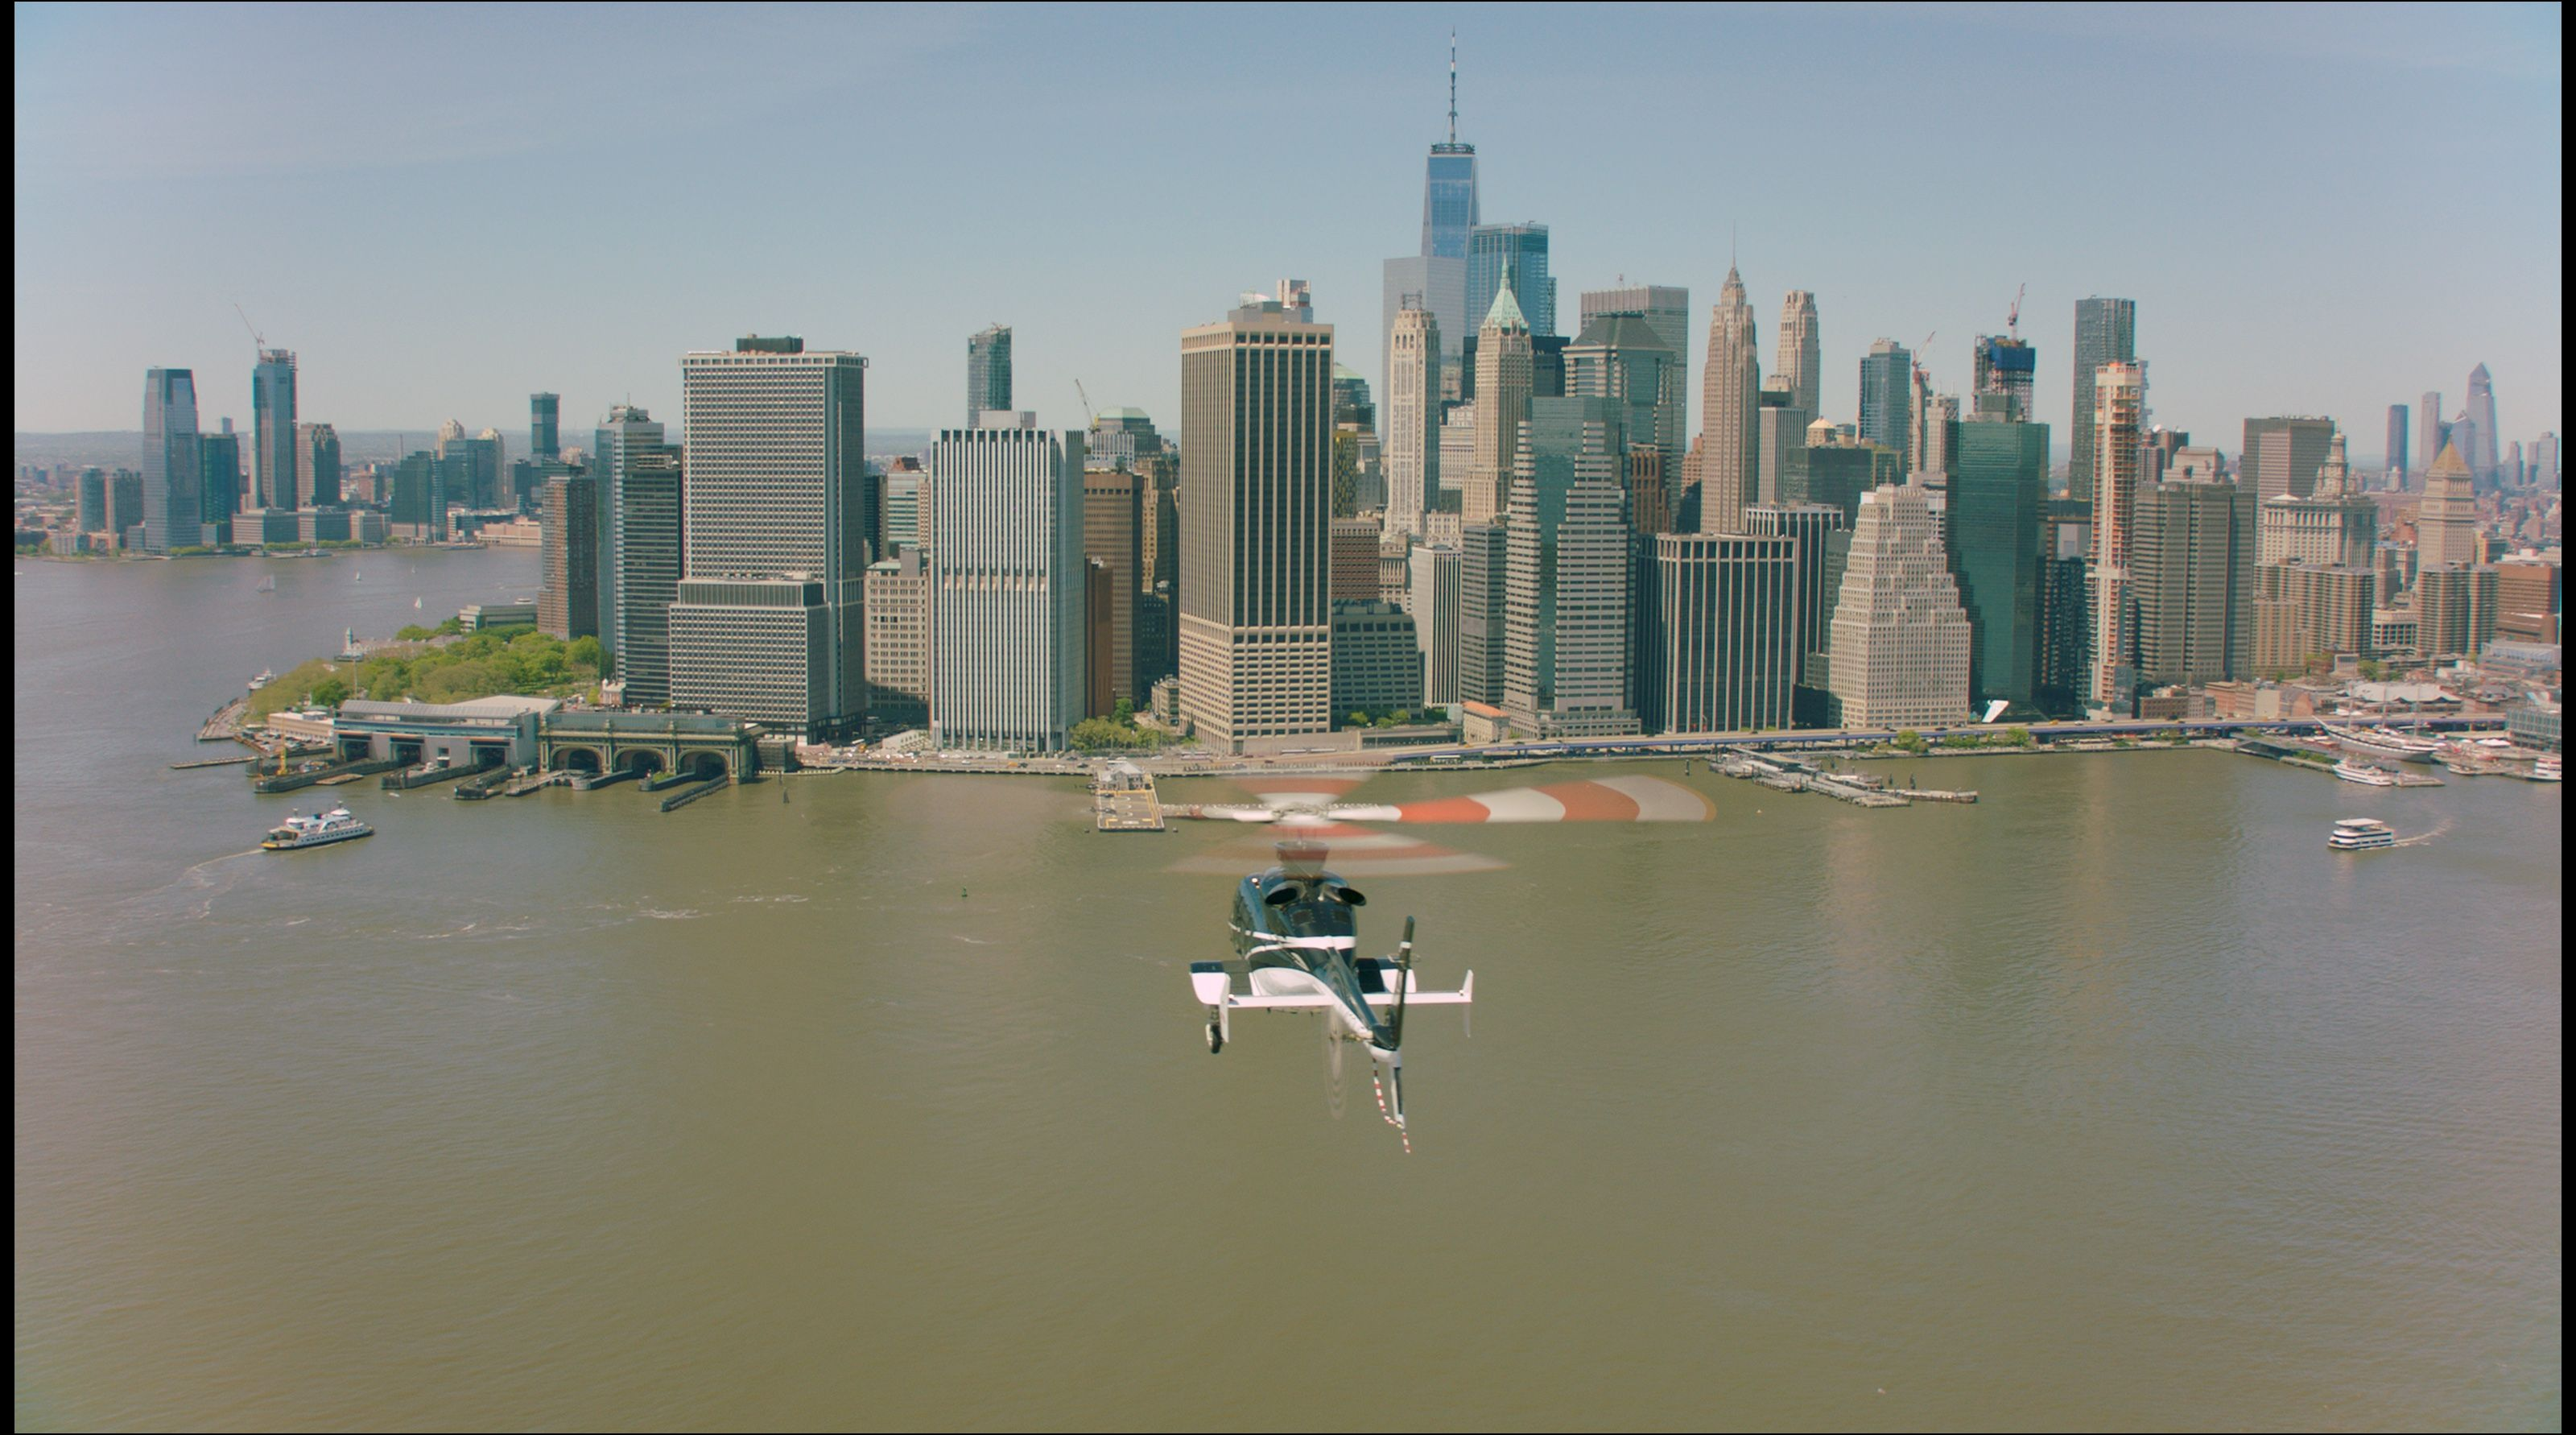 Uber Launches Helicopter Service Between Manhattan and JFK Airport